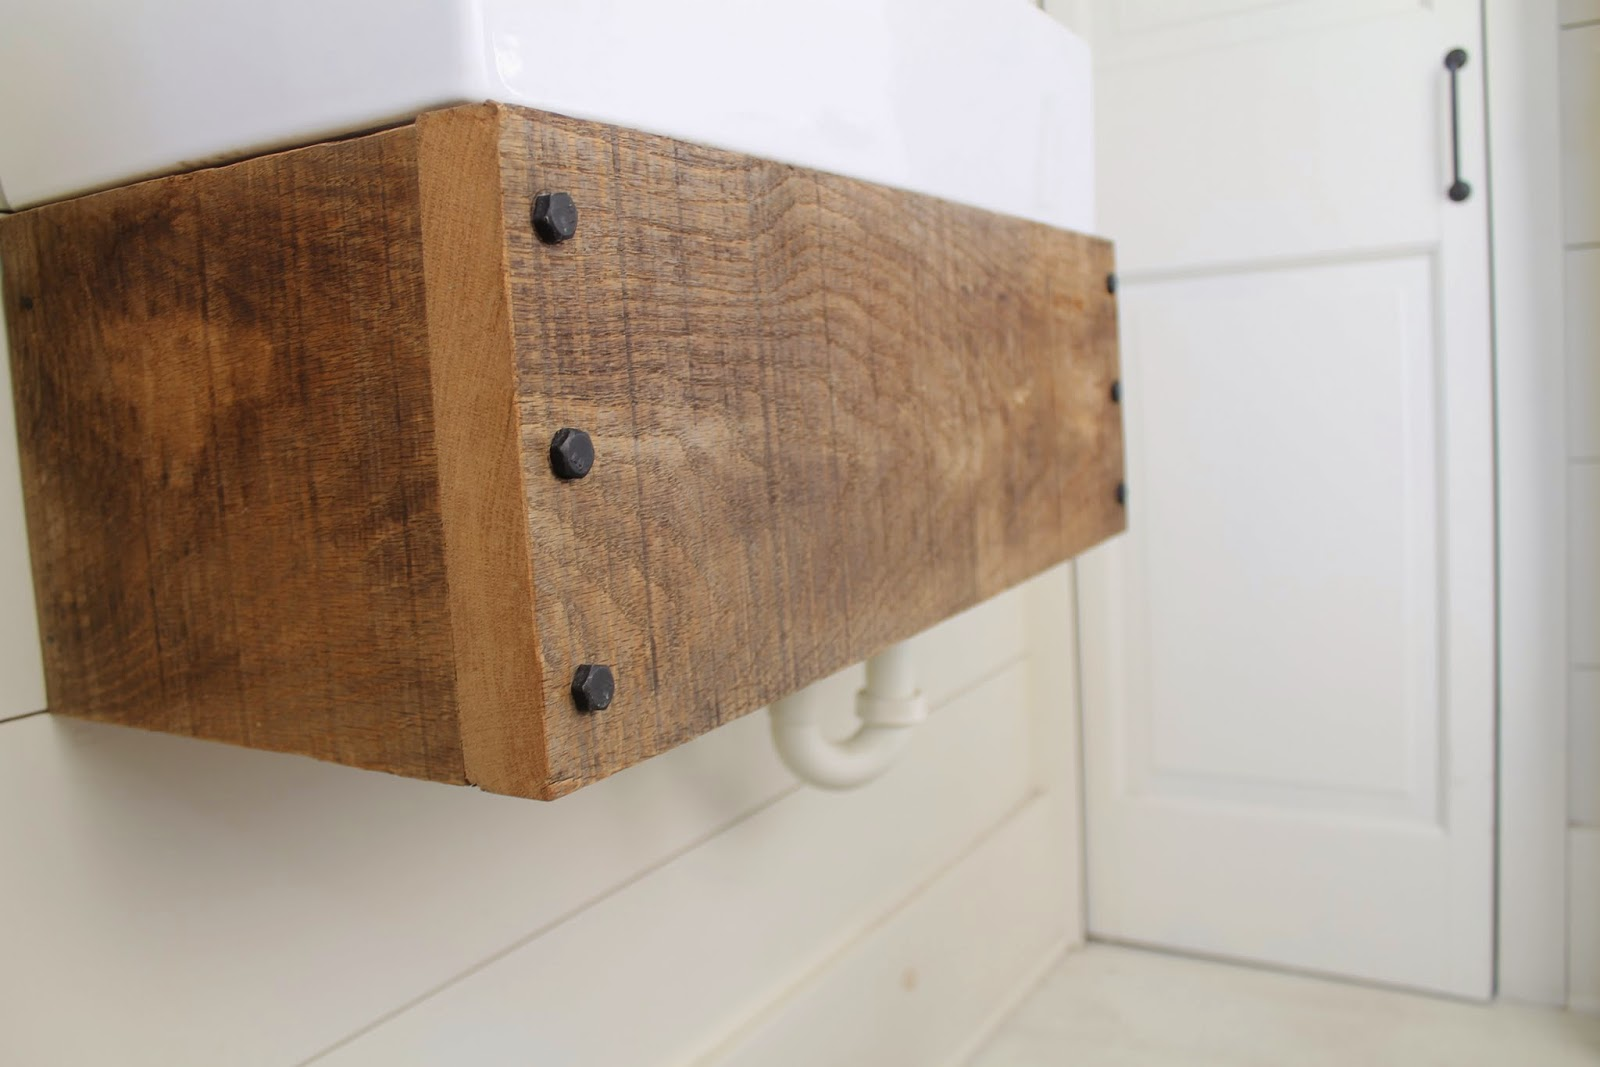 Best use reclaimed wood to make an easy floating bathroom vanity Girl Meets Carpenter featured on